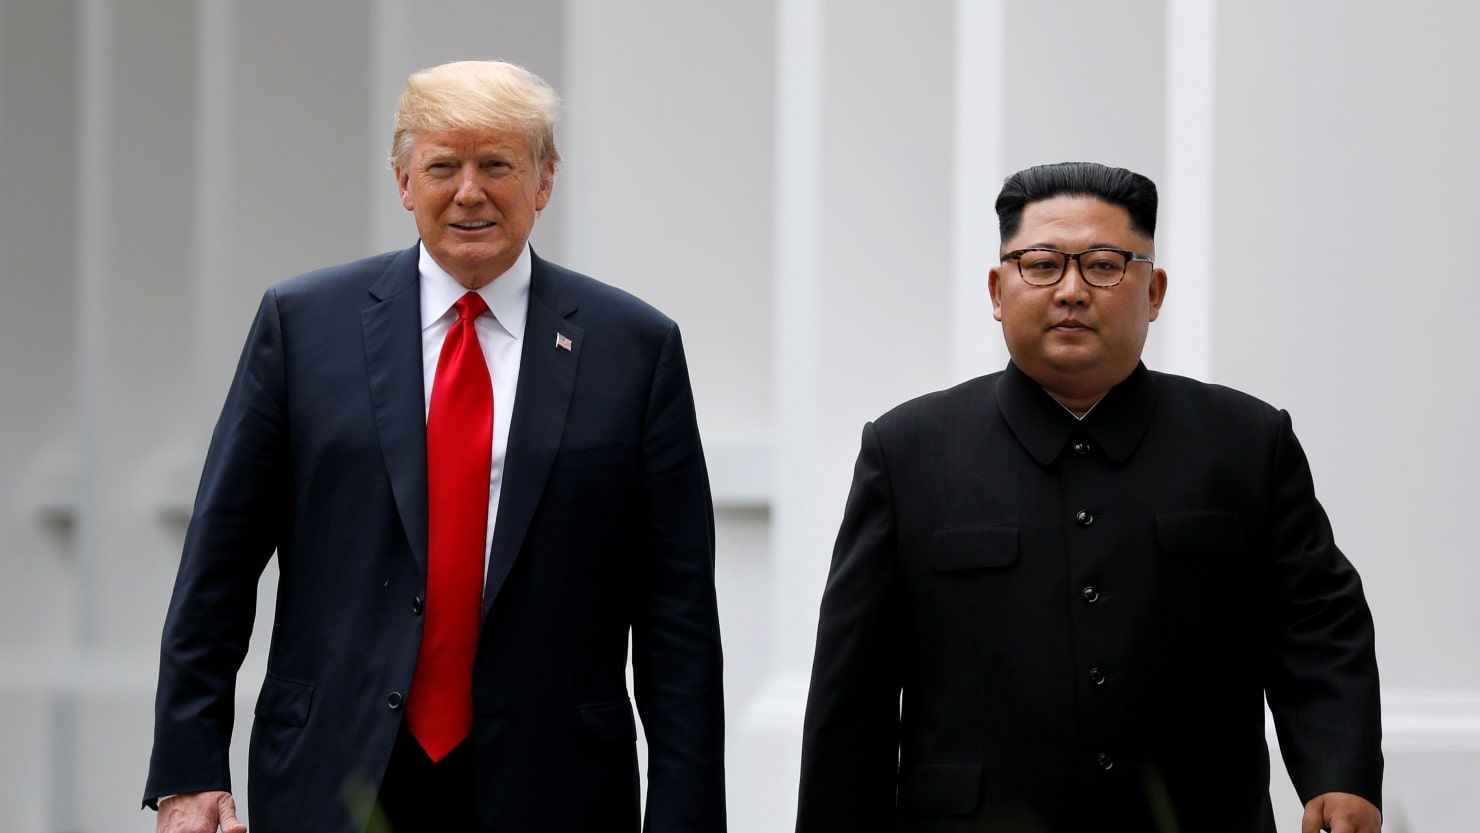 Donald Trump & Kim Jong-un decide to hold second summit next month